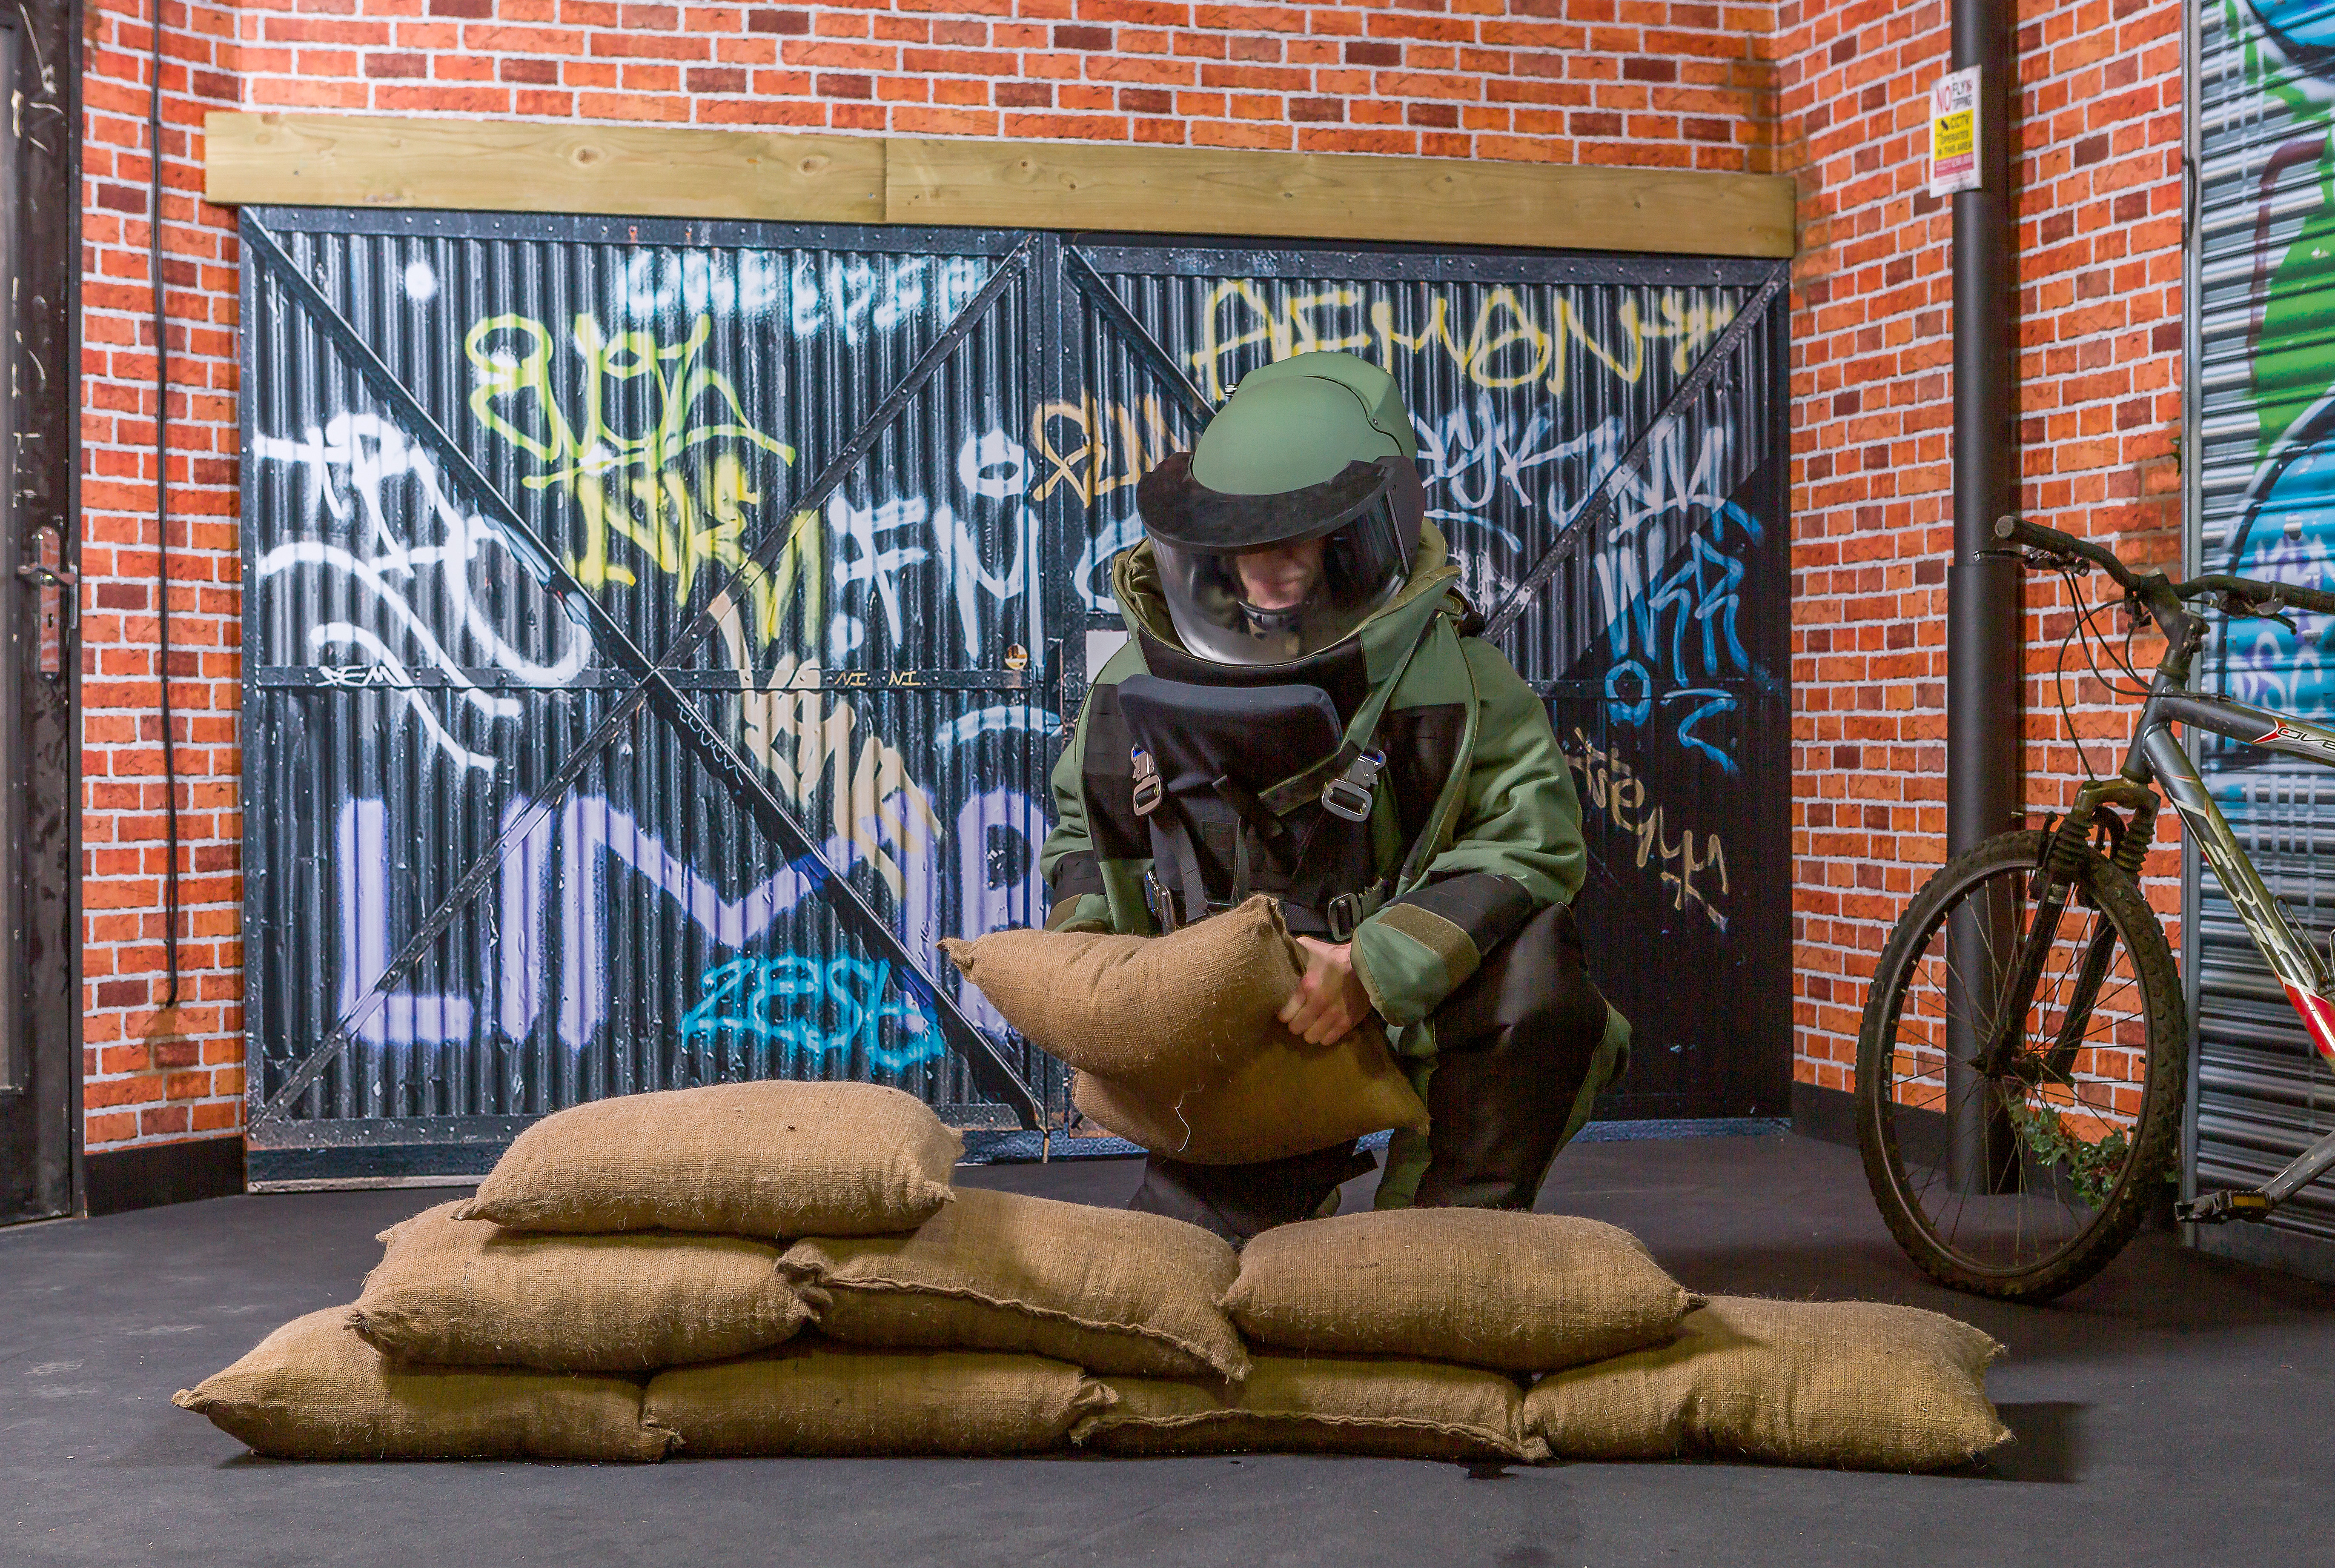 BlastSax April 2019 with soldier in protective equipment building a wall of Blastsax 2.jpg